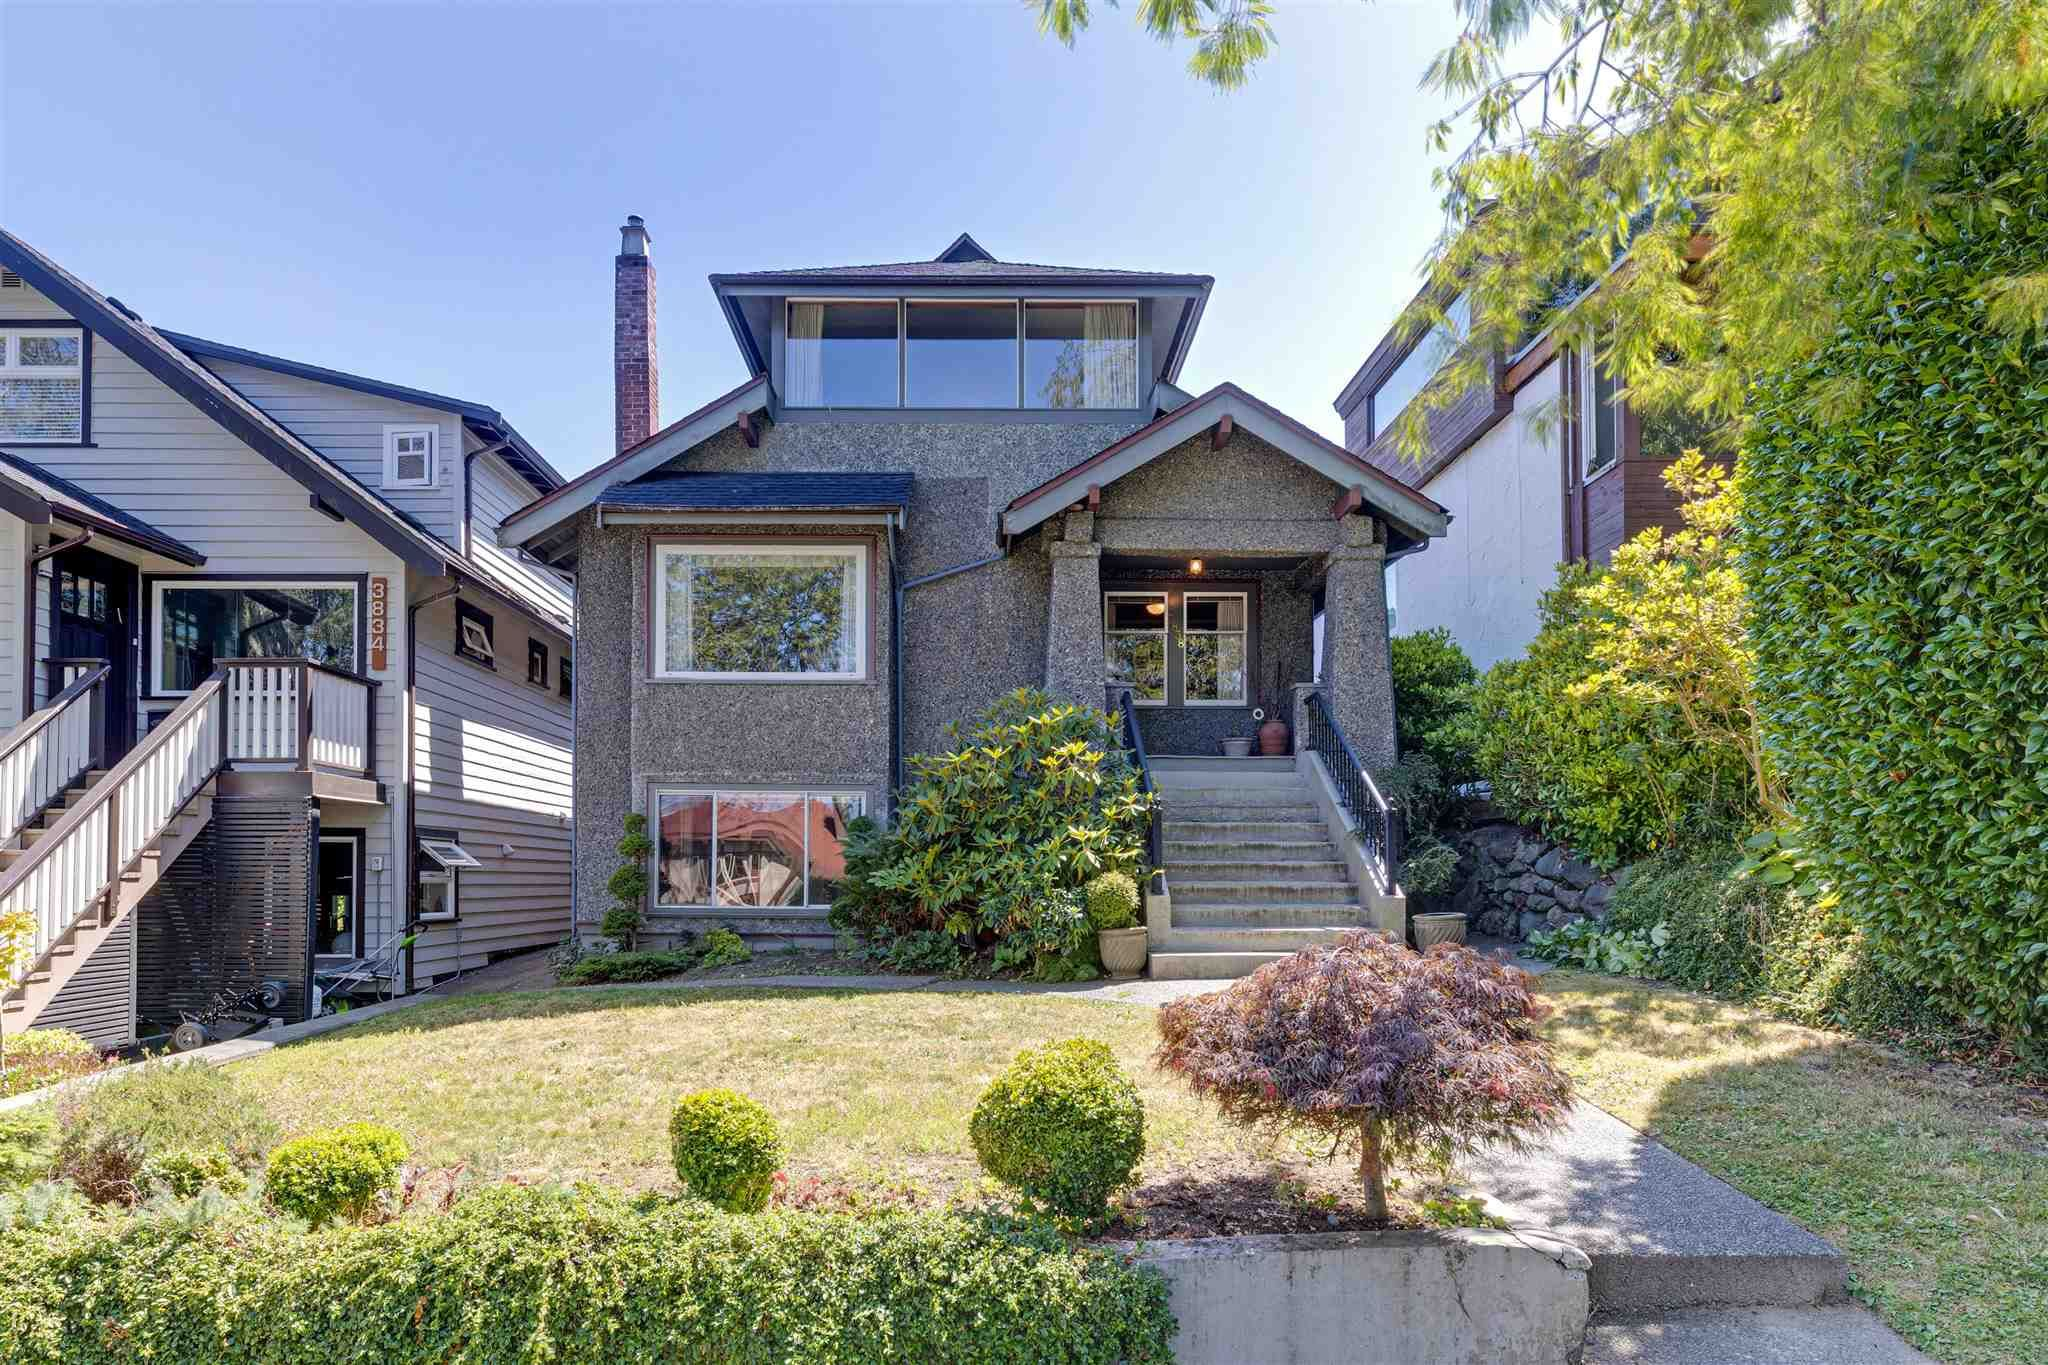 Main Photo: 3838 W 11TH Avenue in Vancouver: Point Grey House for sale (Vancouver West)  : MLS®# R2602940